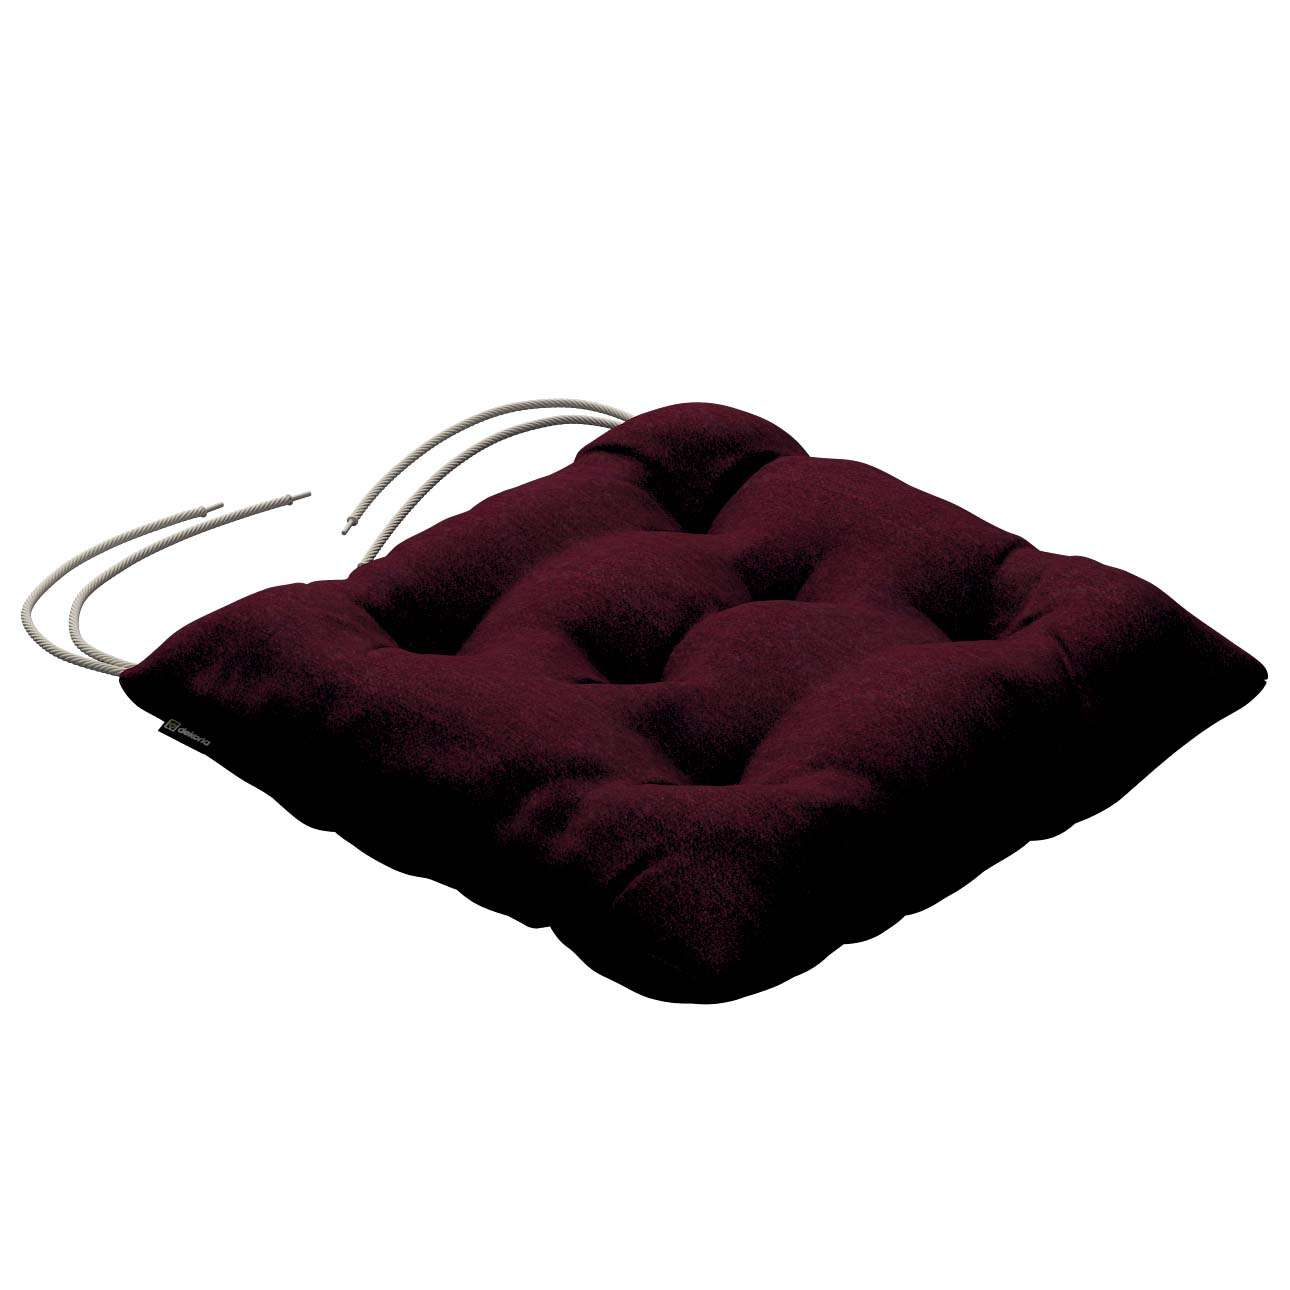 Jacek seat pad with ties 40 x 40 x 8 cm (16 x 16 x 3 inch) in collection Chenille, fabric: 702-19